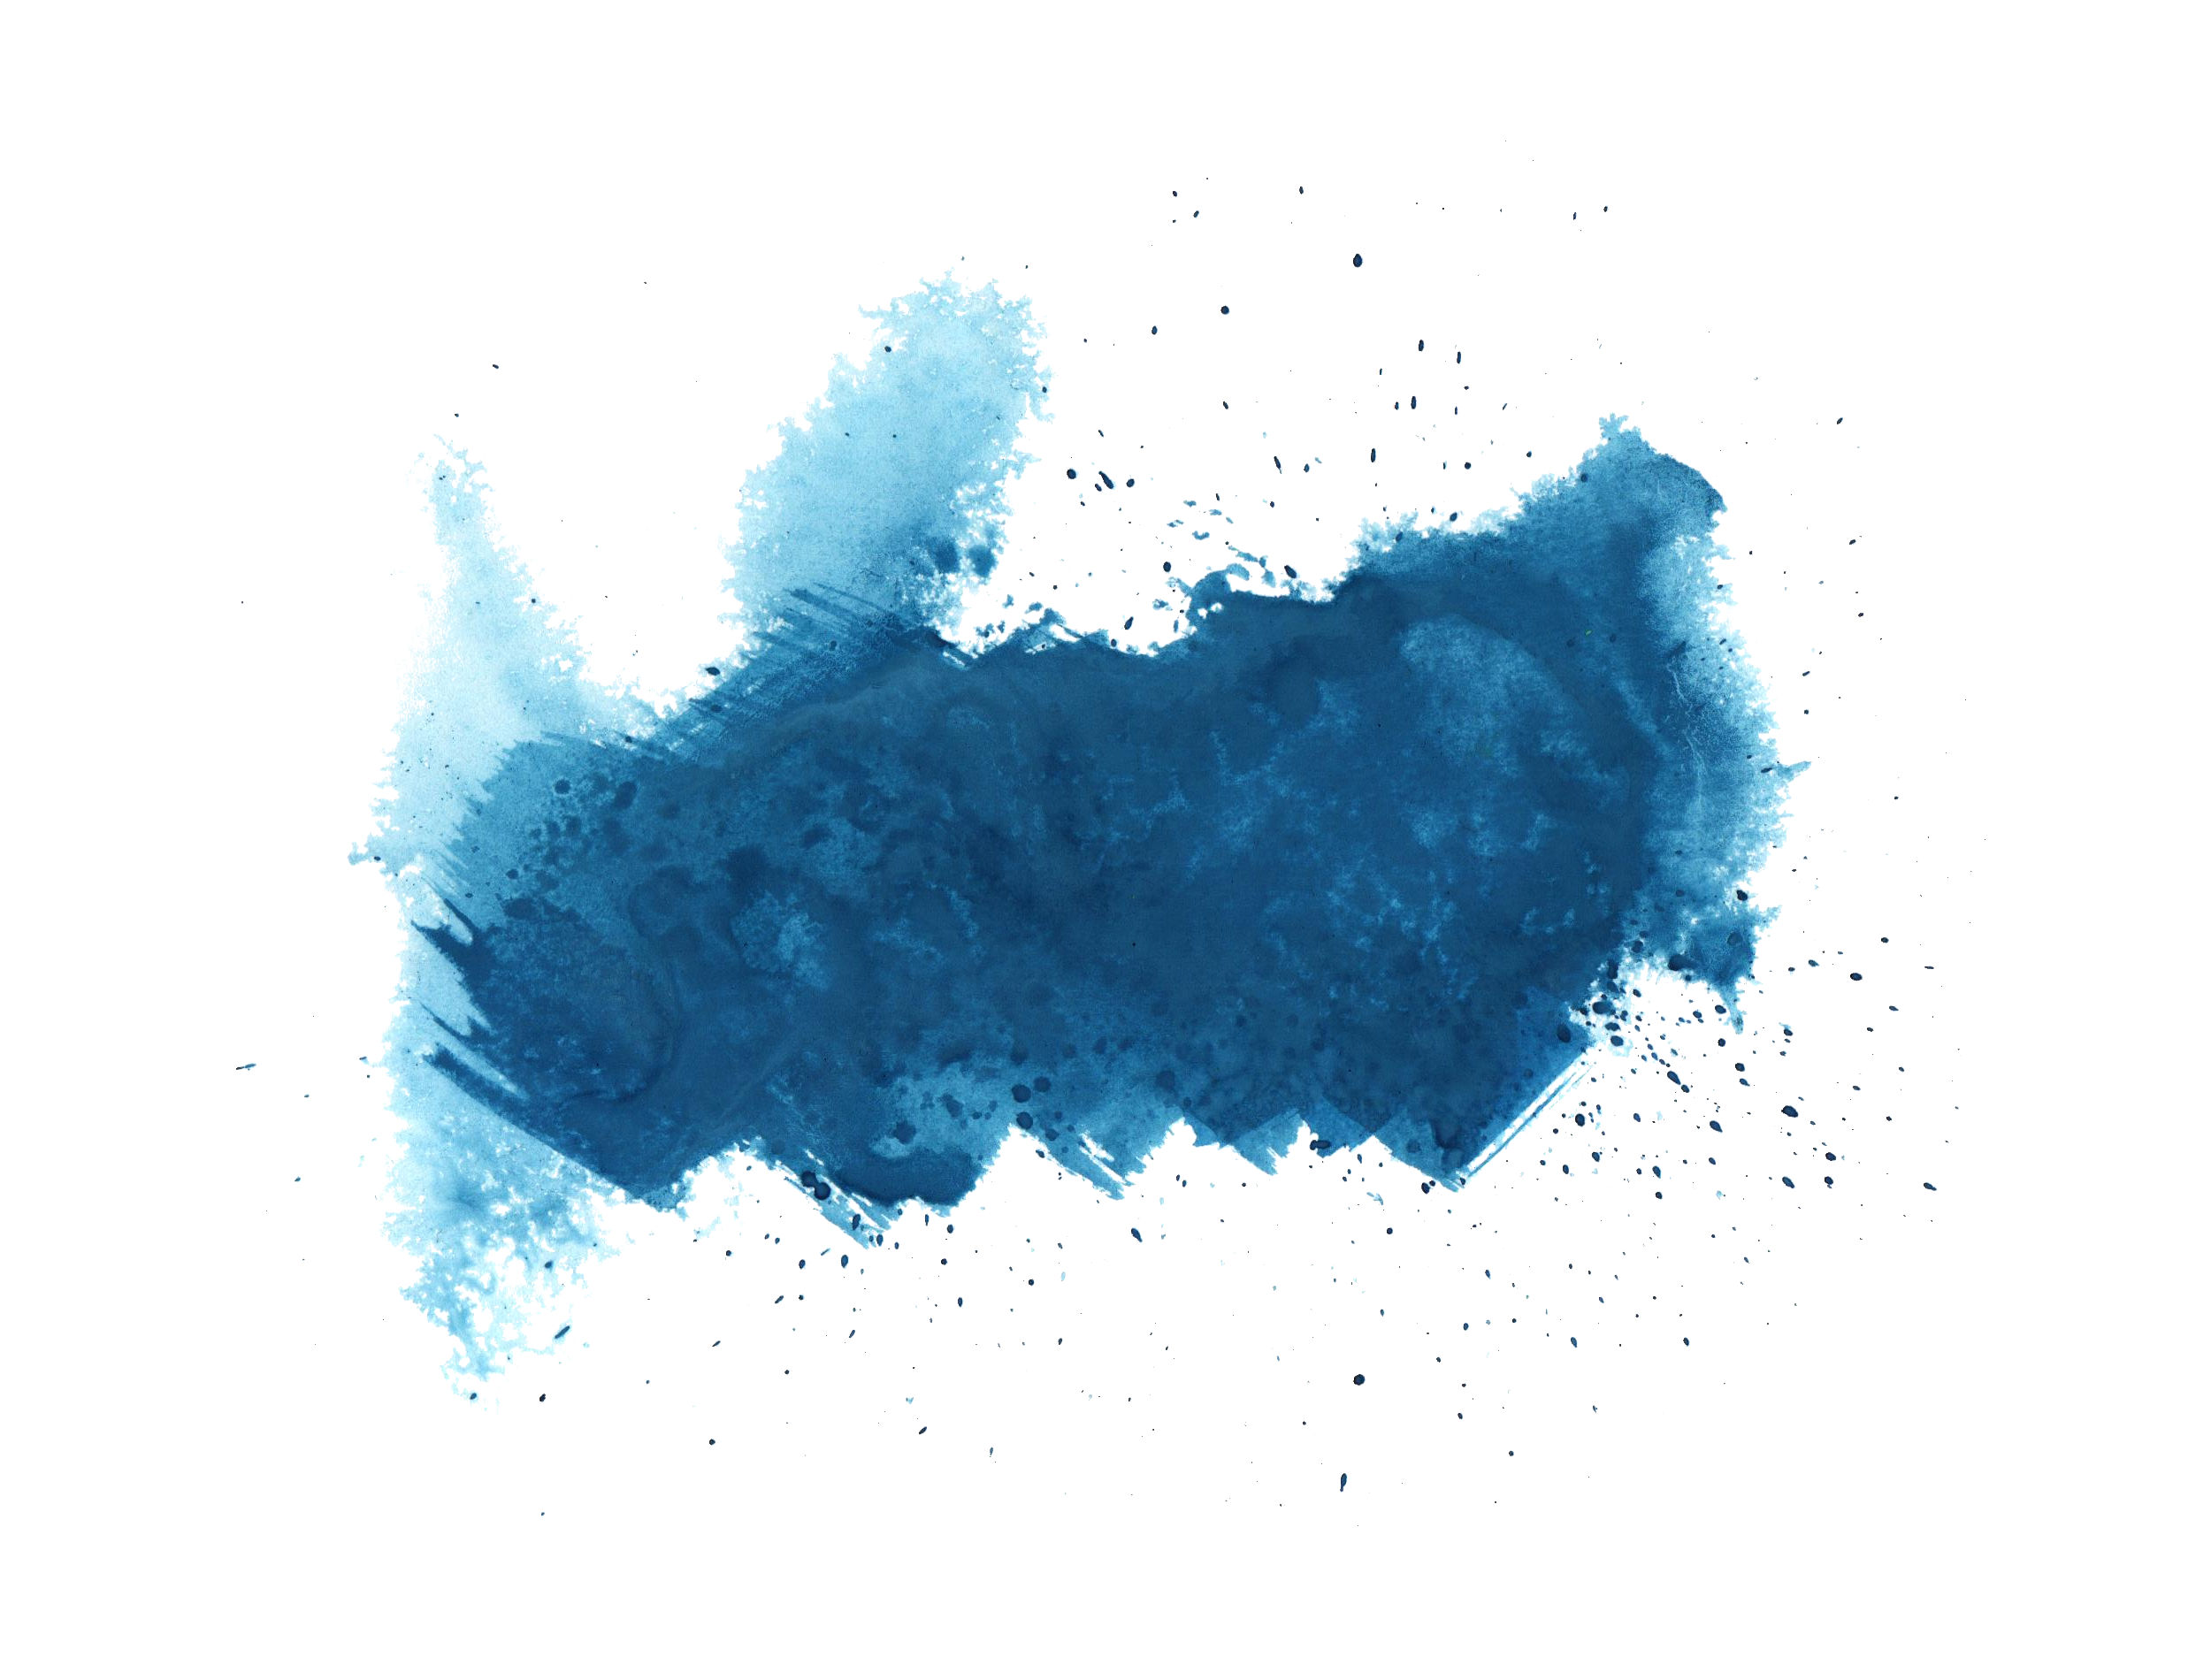 4 Dark Blue Watercolor Background Jpg Onlygfx Com